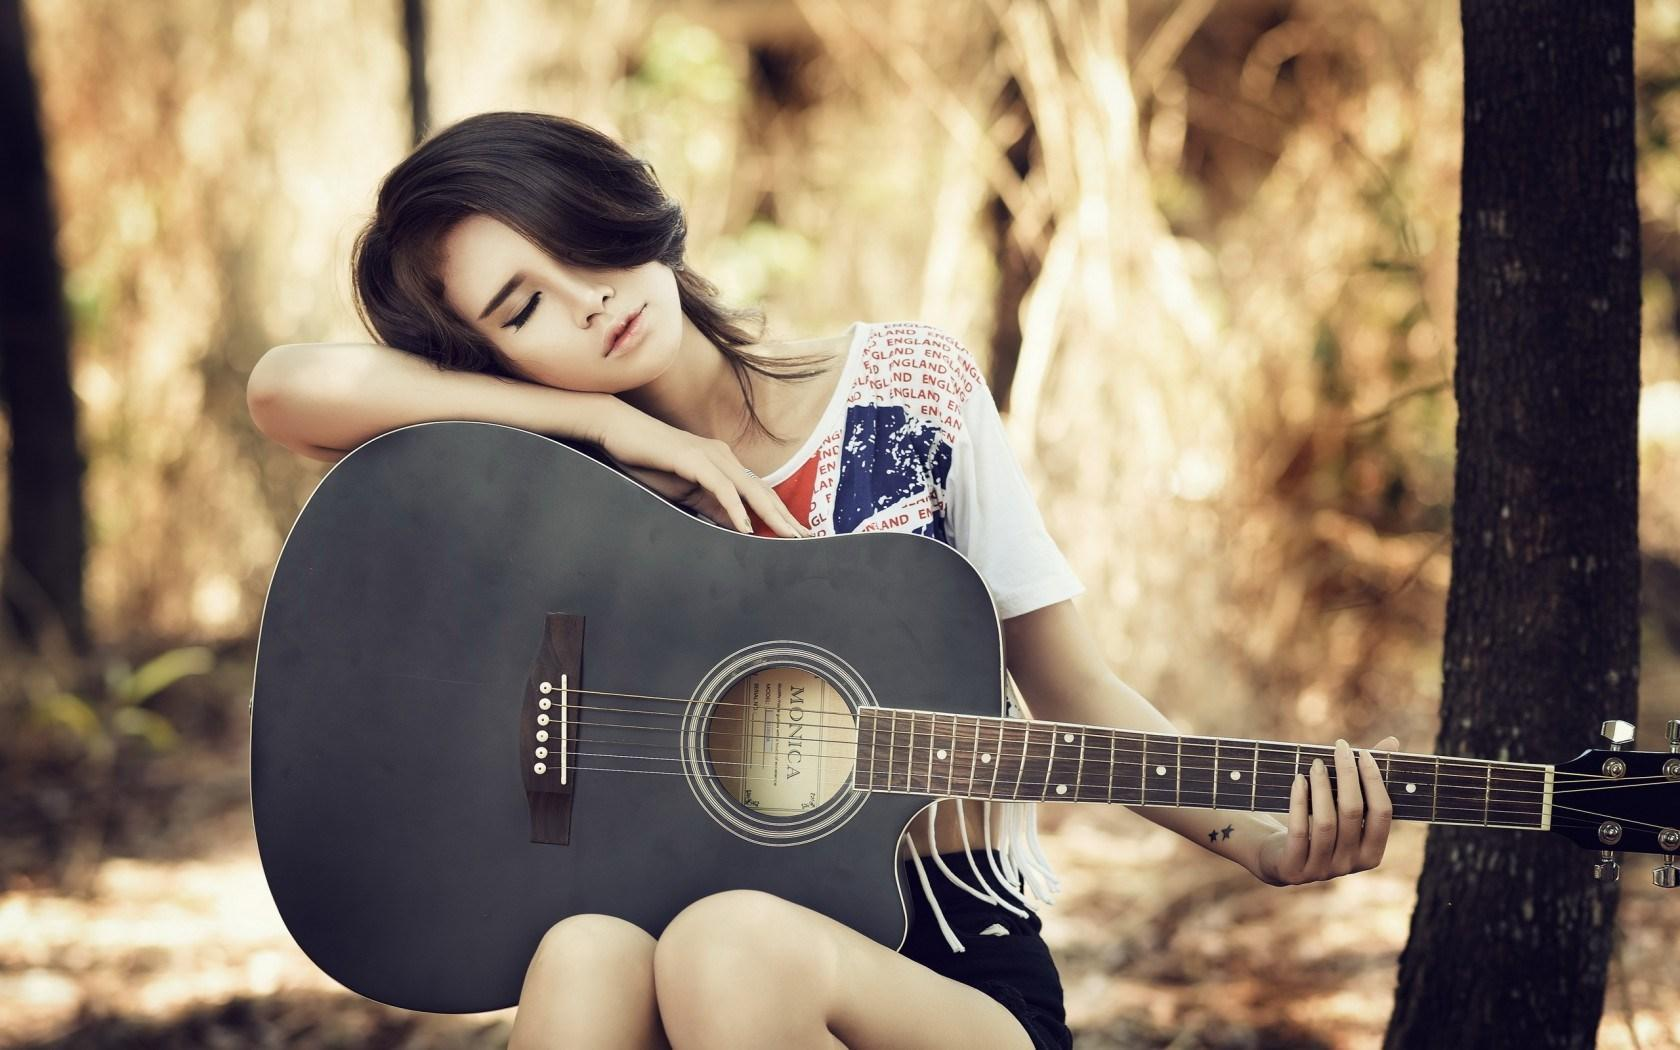 Superb girl with a guitar